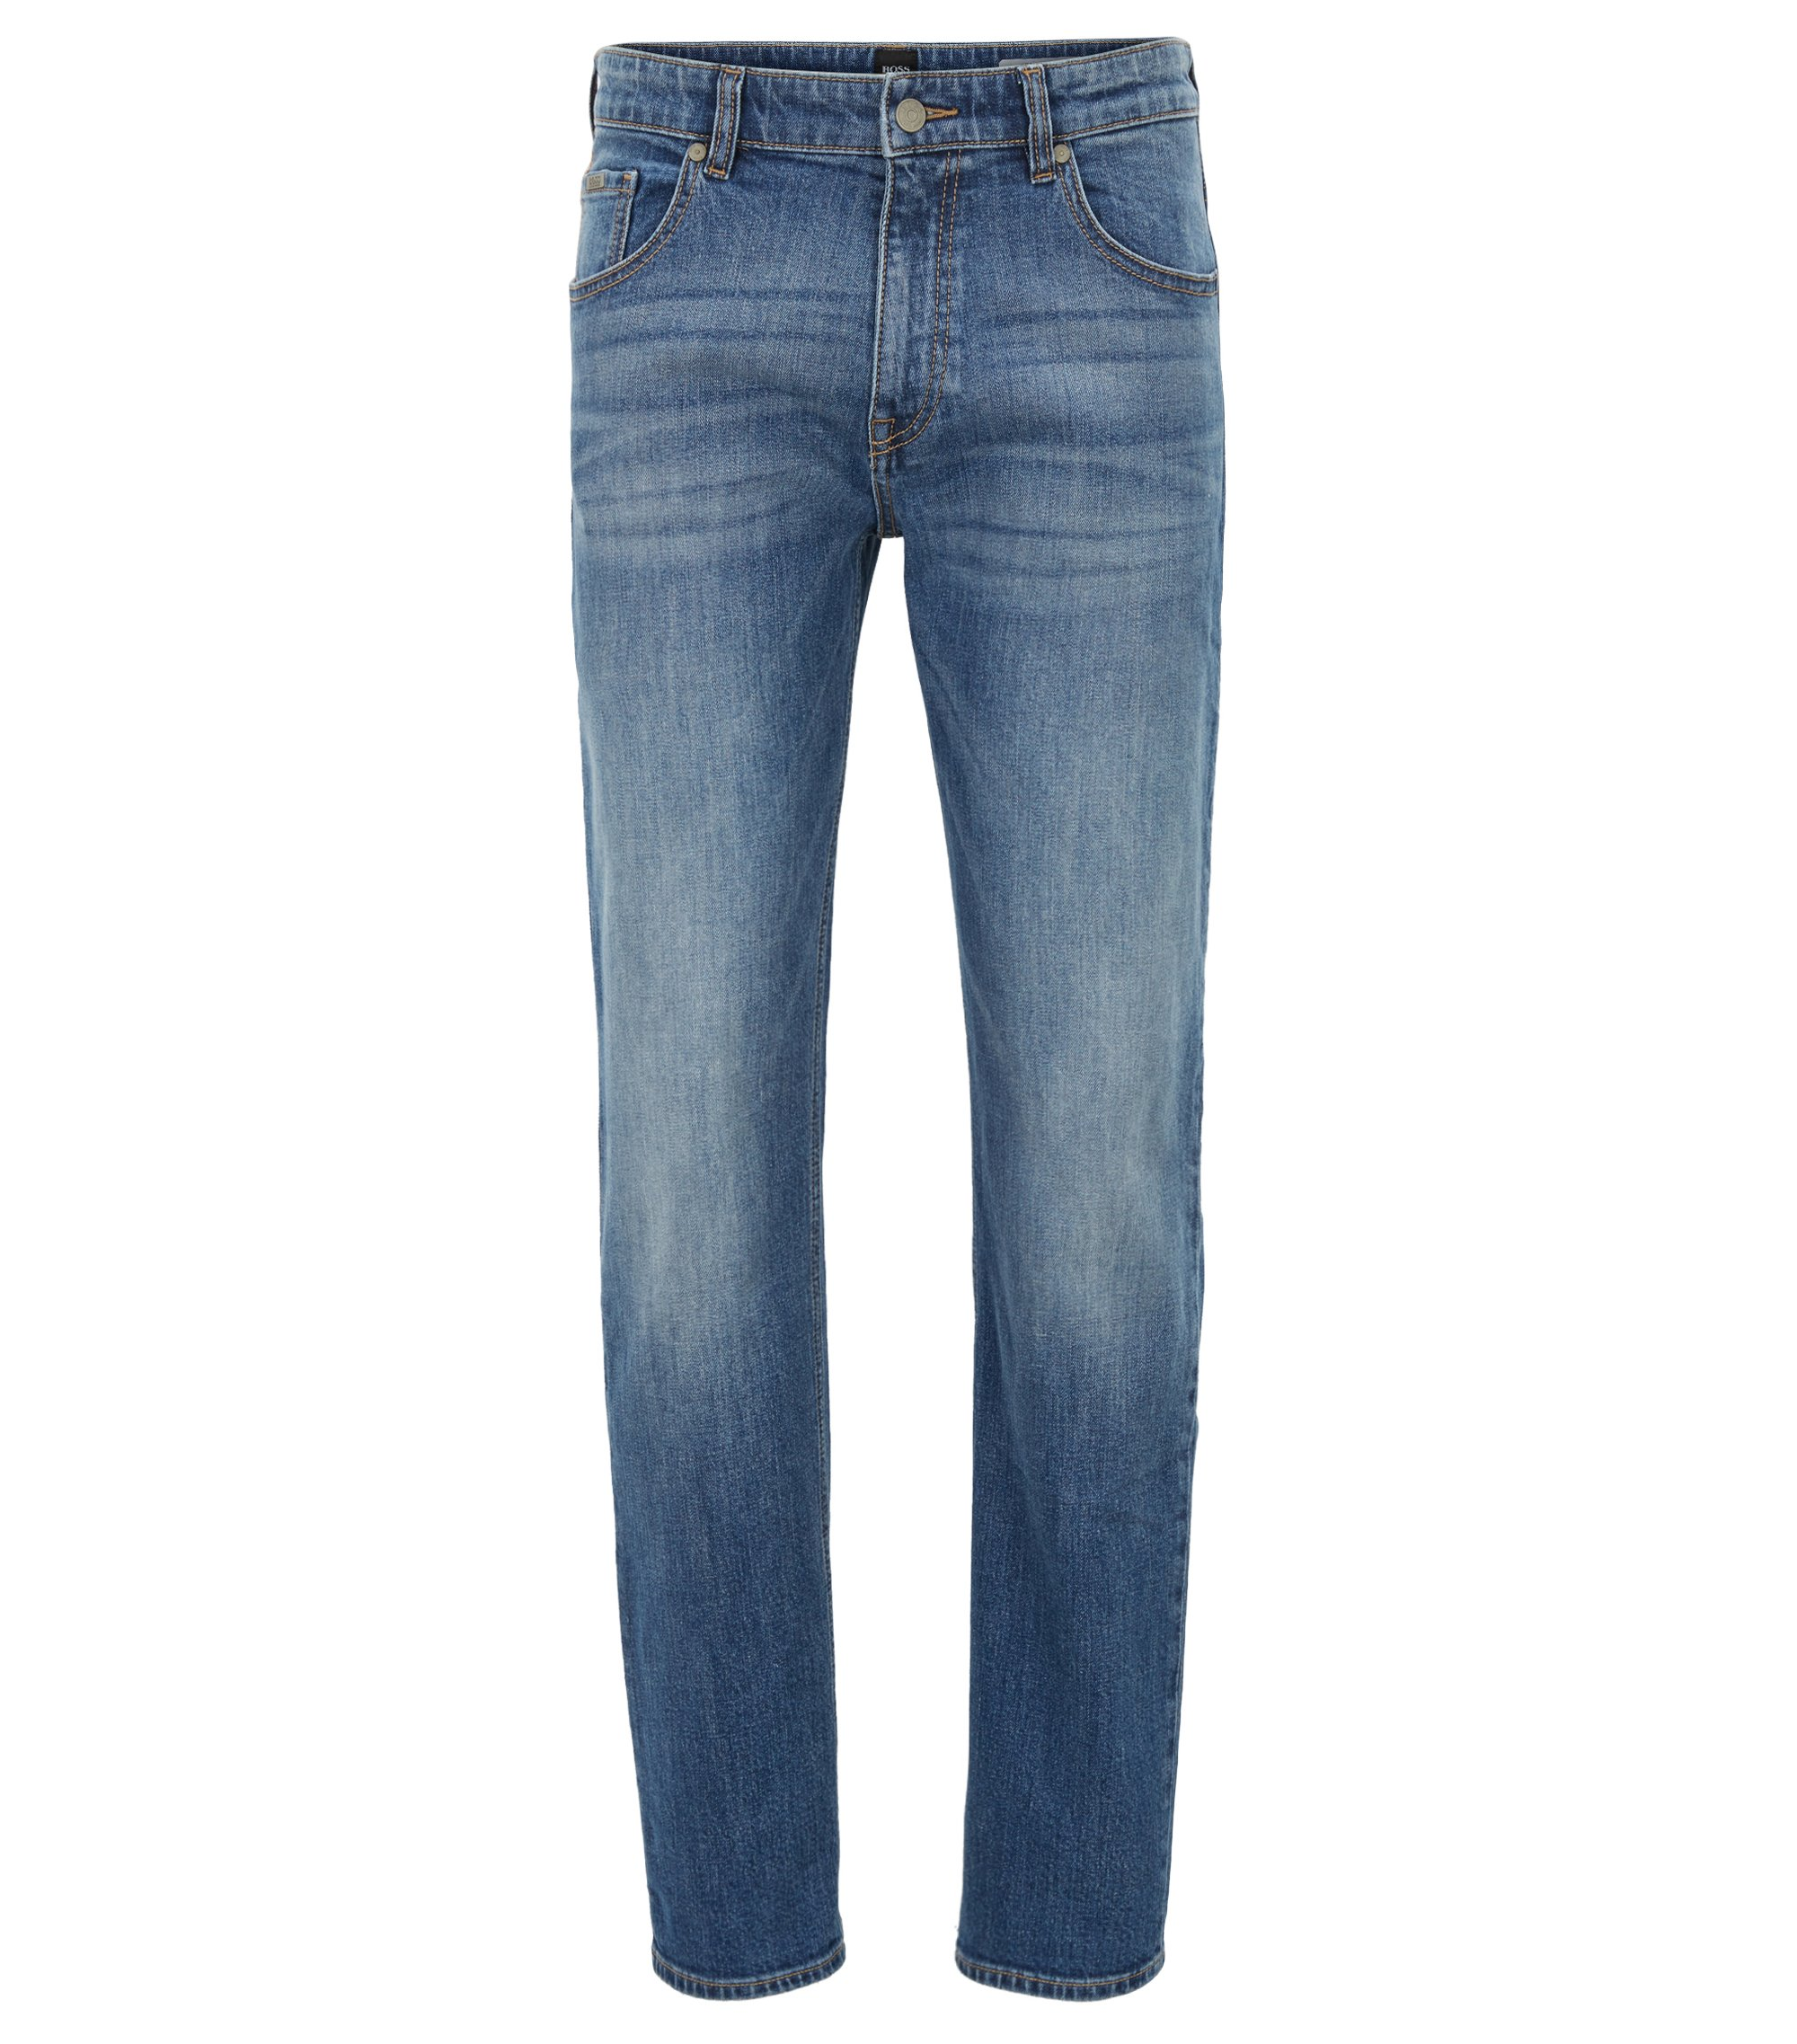 Jean Relaxed Fit en denim stretch délavé bleu clair, Bleu